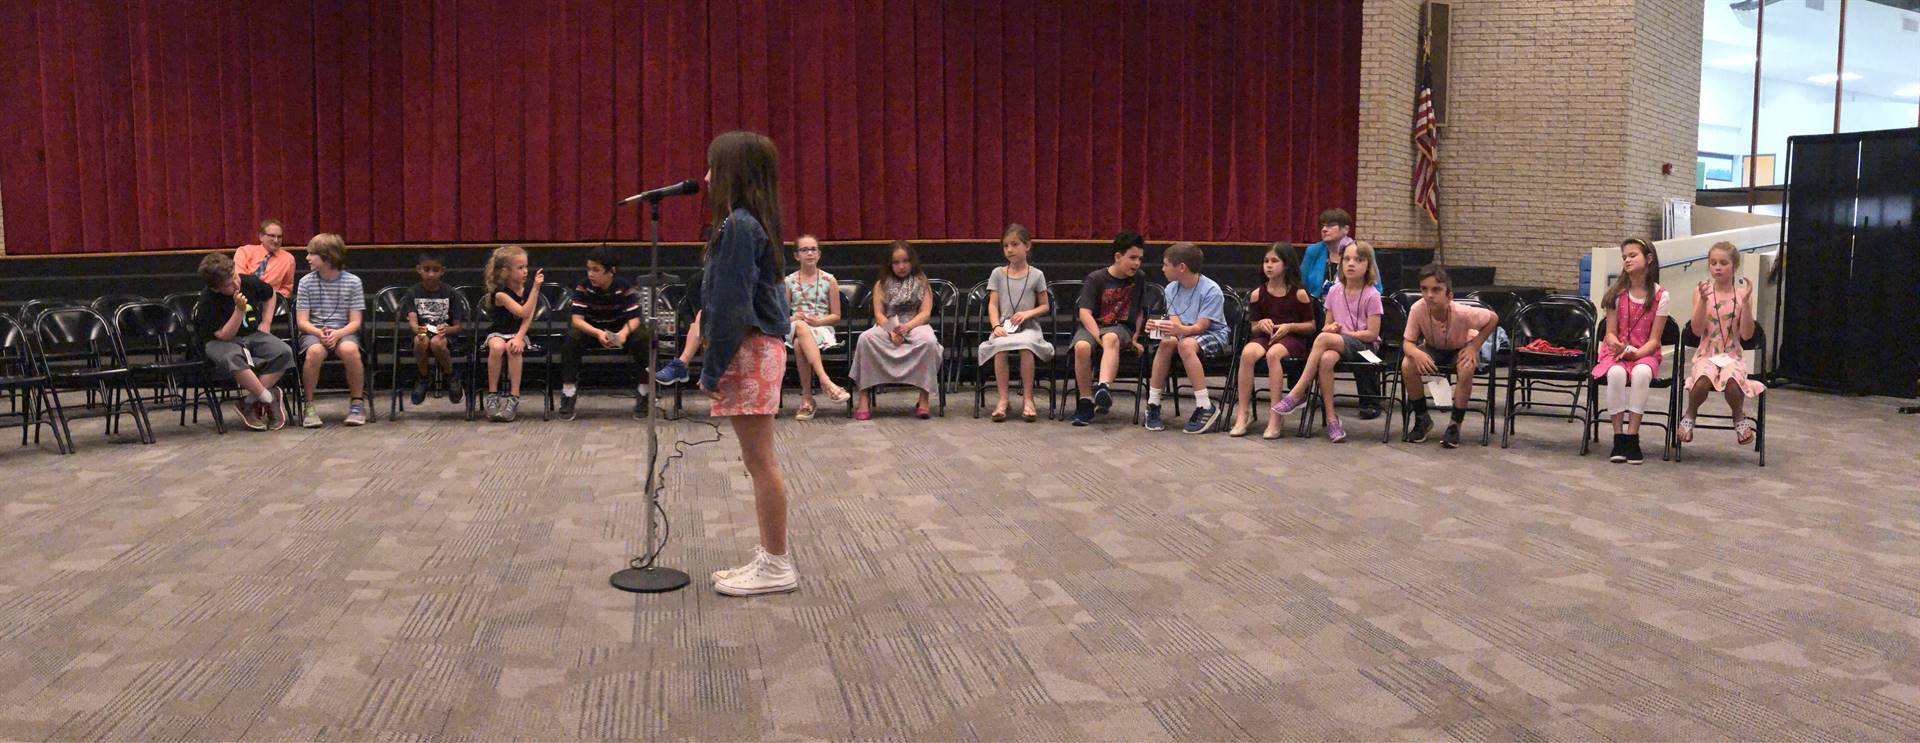 panoramic shot of a speller with the competitors in the background